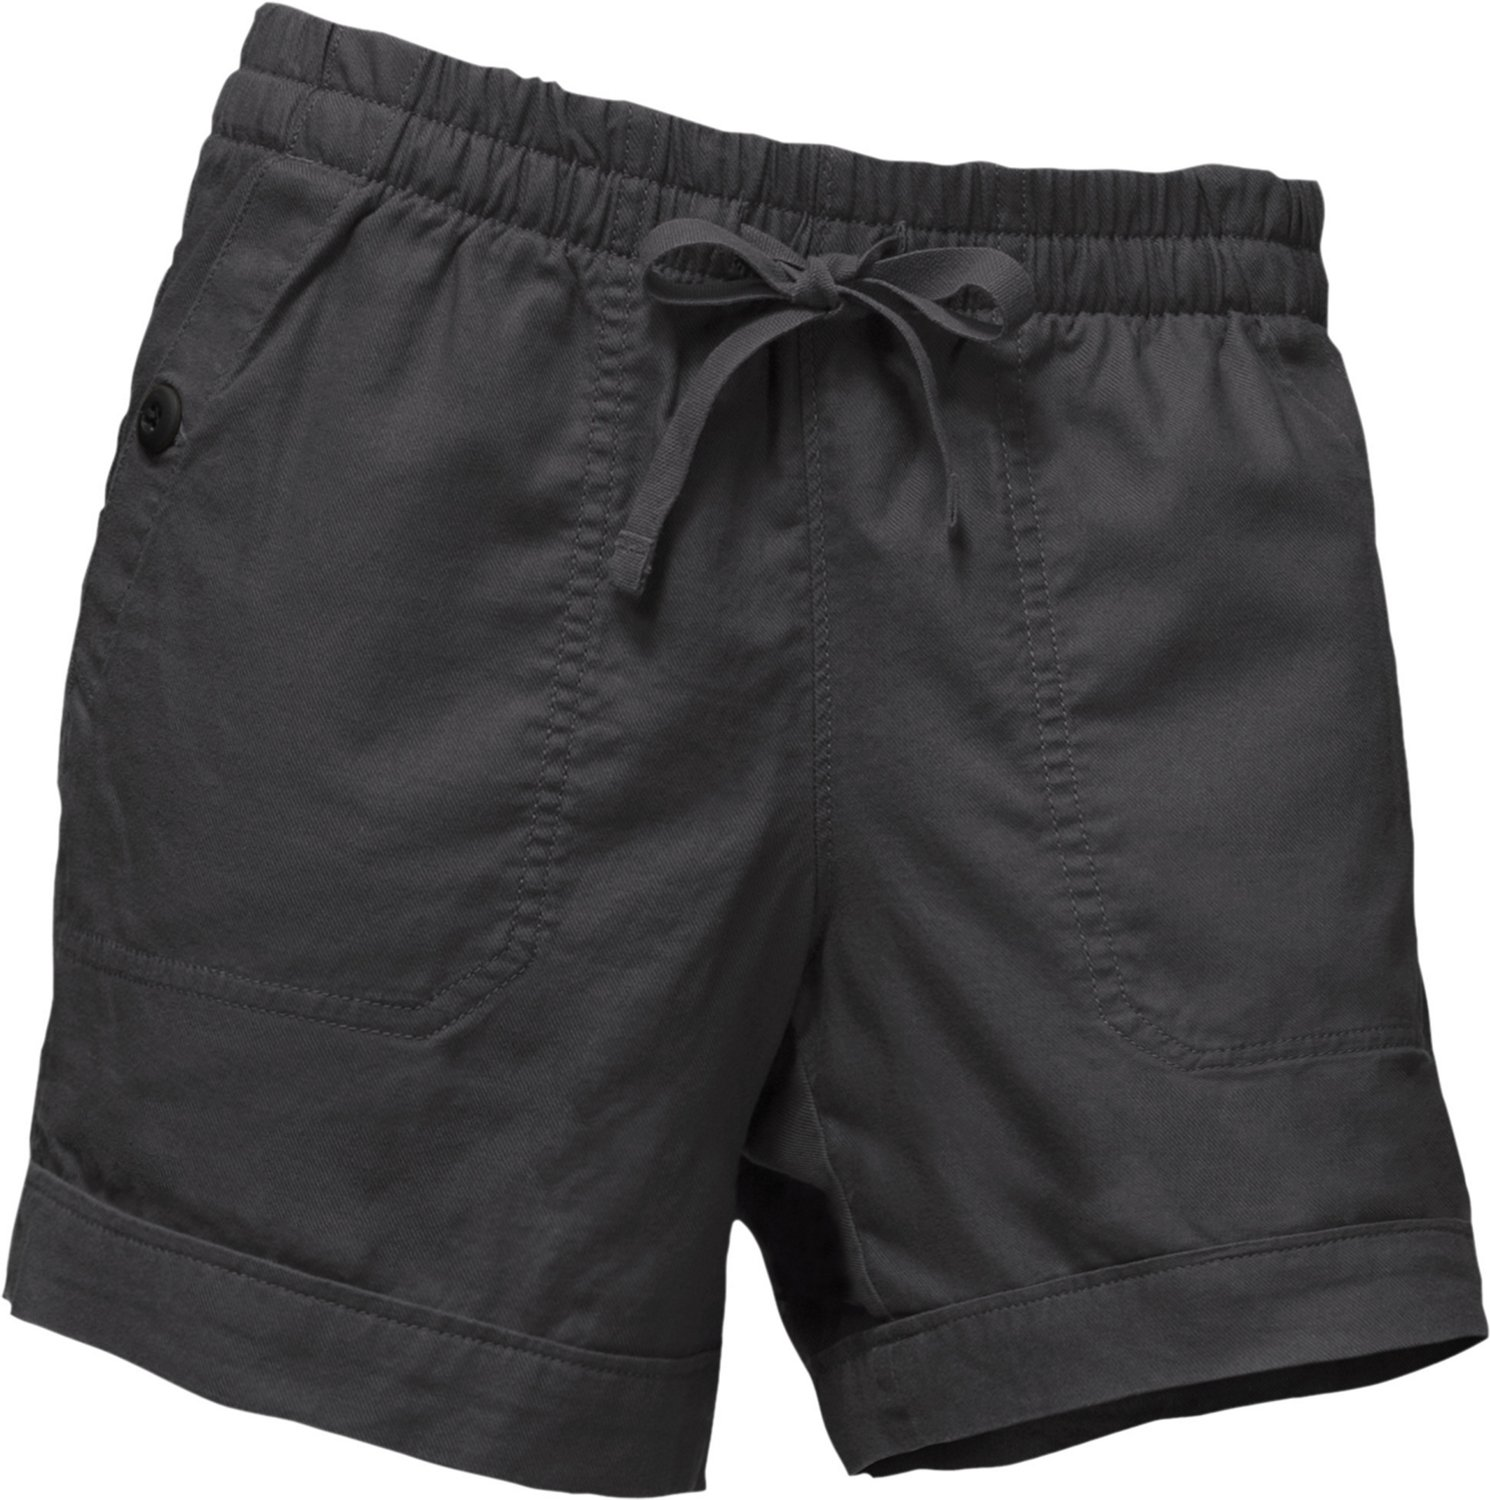 Womens Workout Shorts Academy